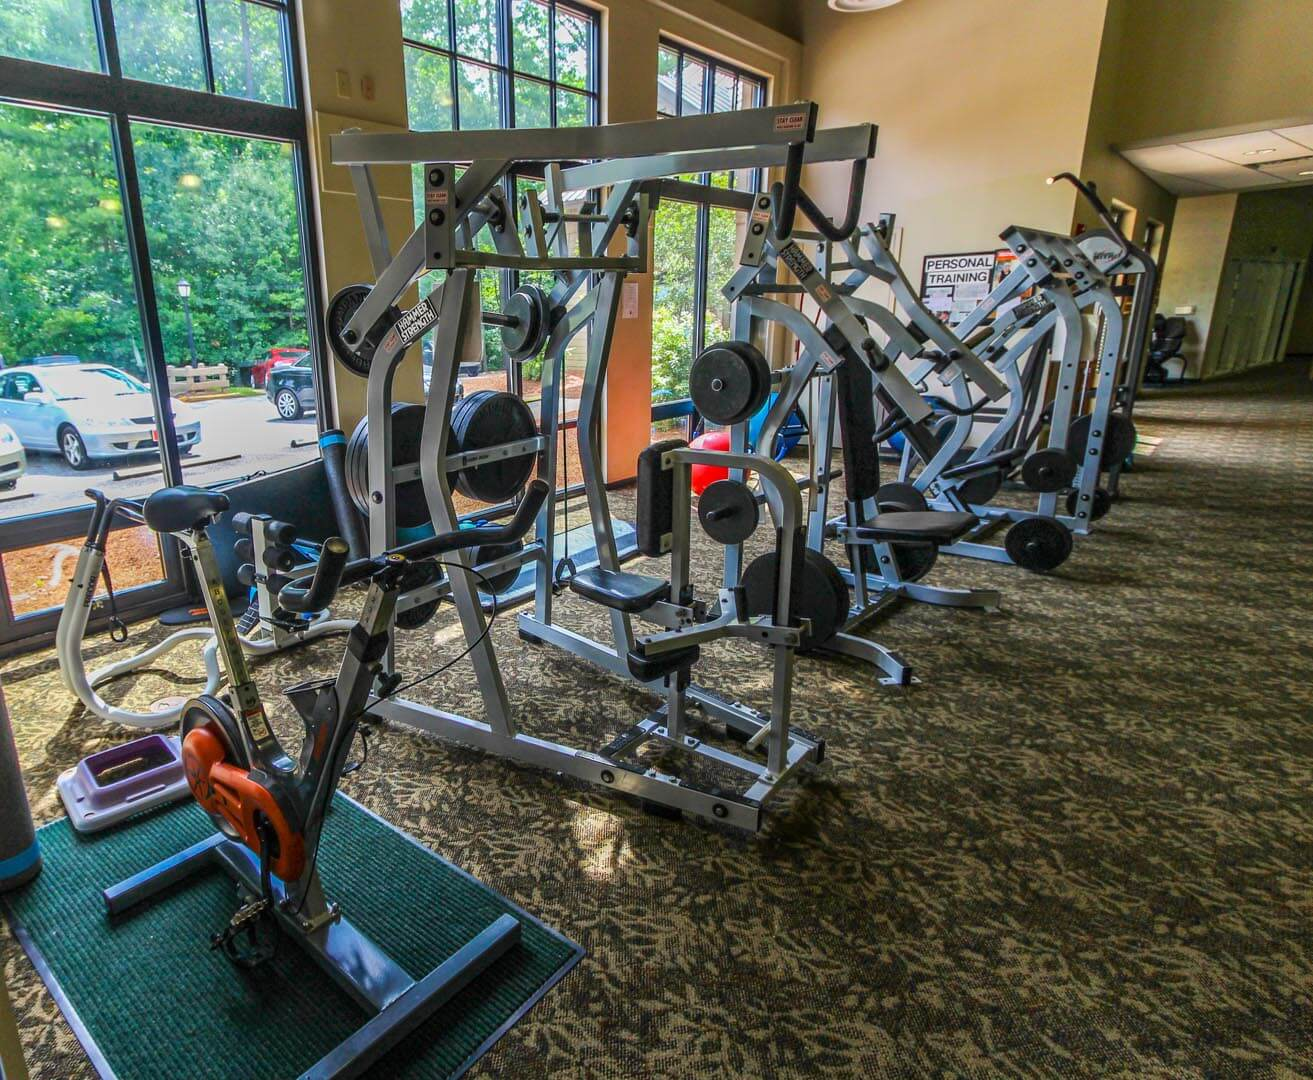 A fully equipped exercise room at VRI's Golf Club Villas in Marble Hill, Georgia.